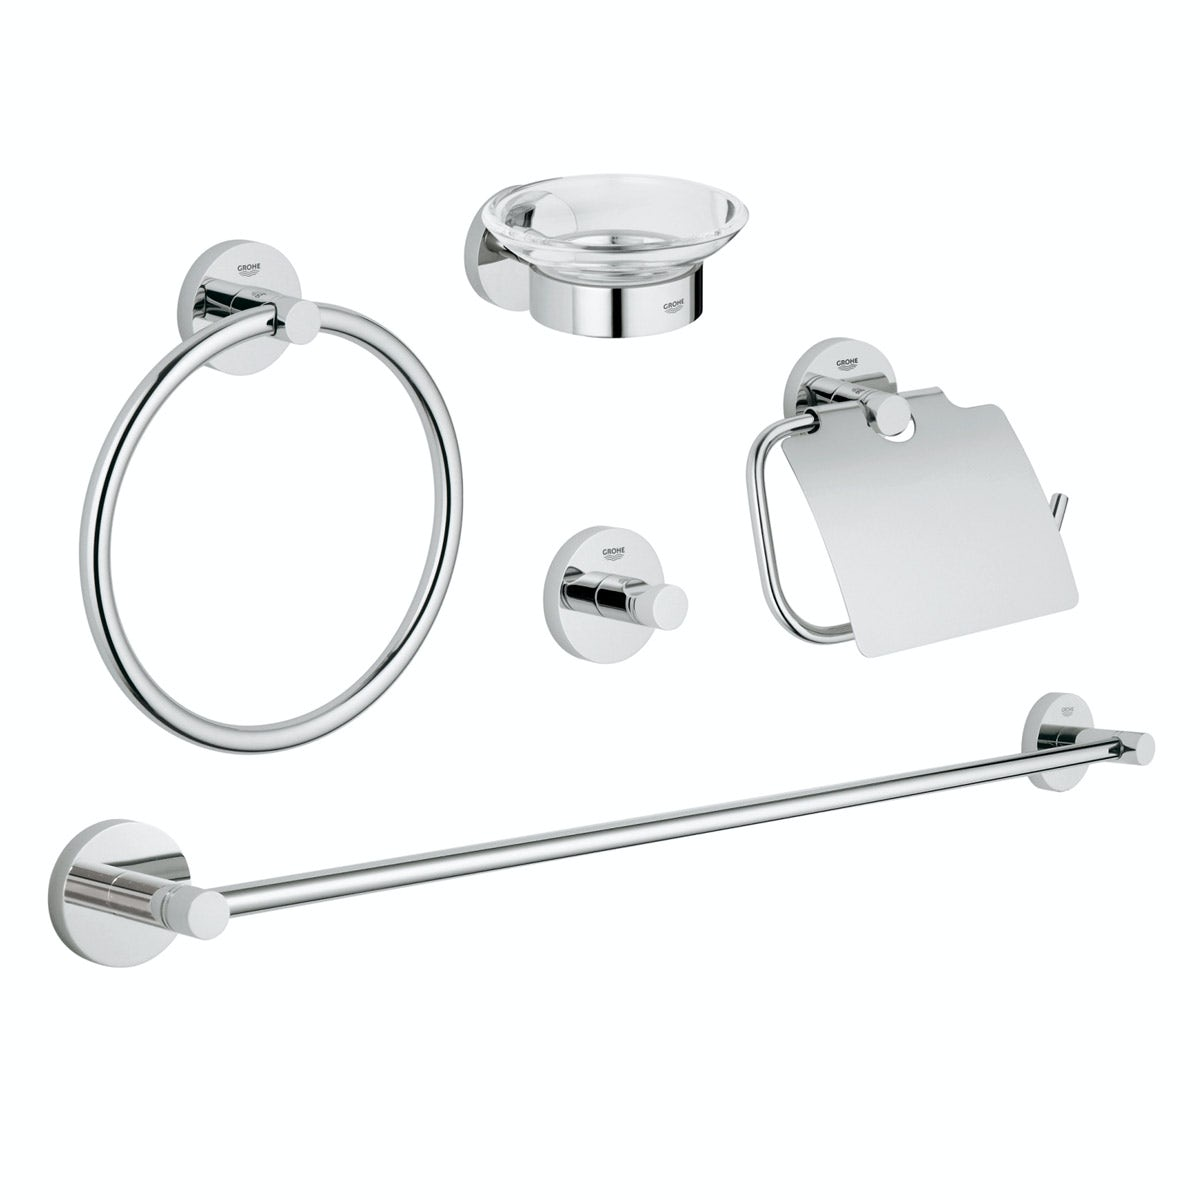 Grohe Essentials 5 in 1 master bathroom accessory set